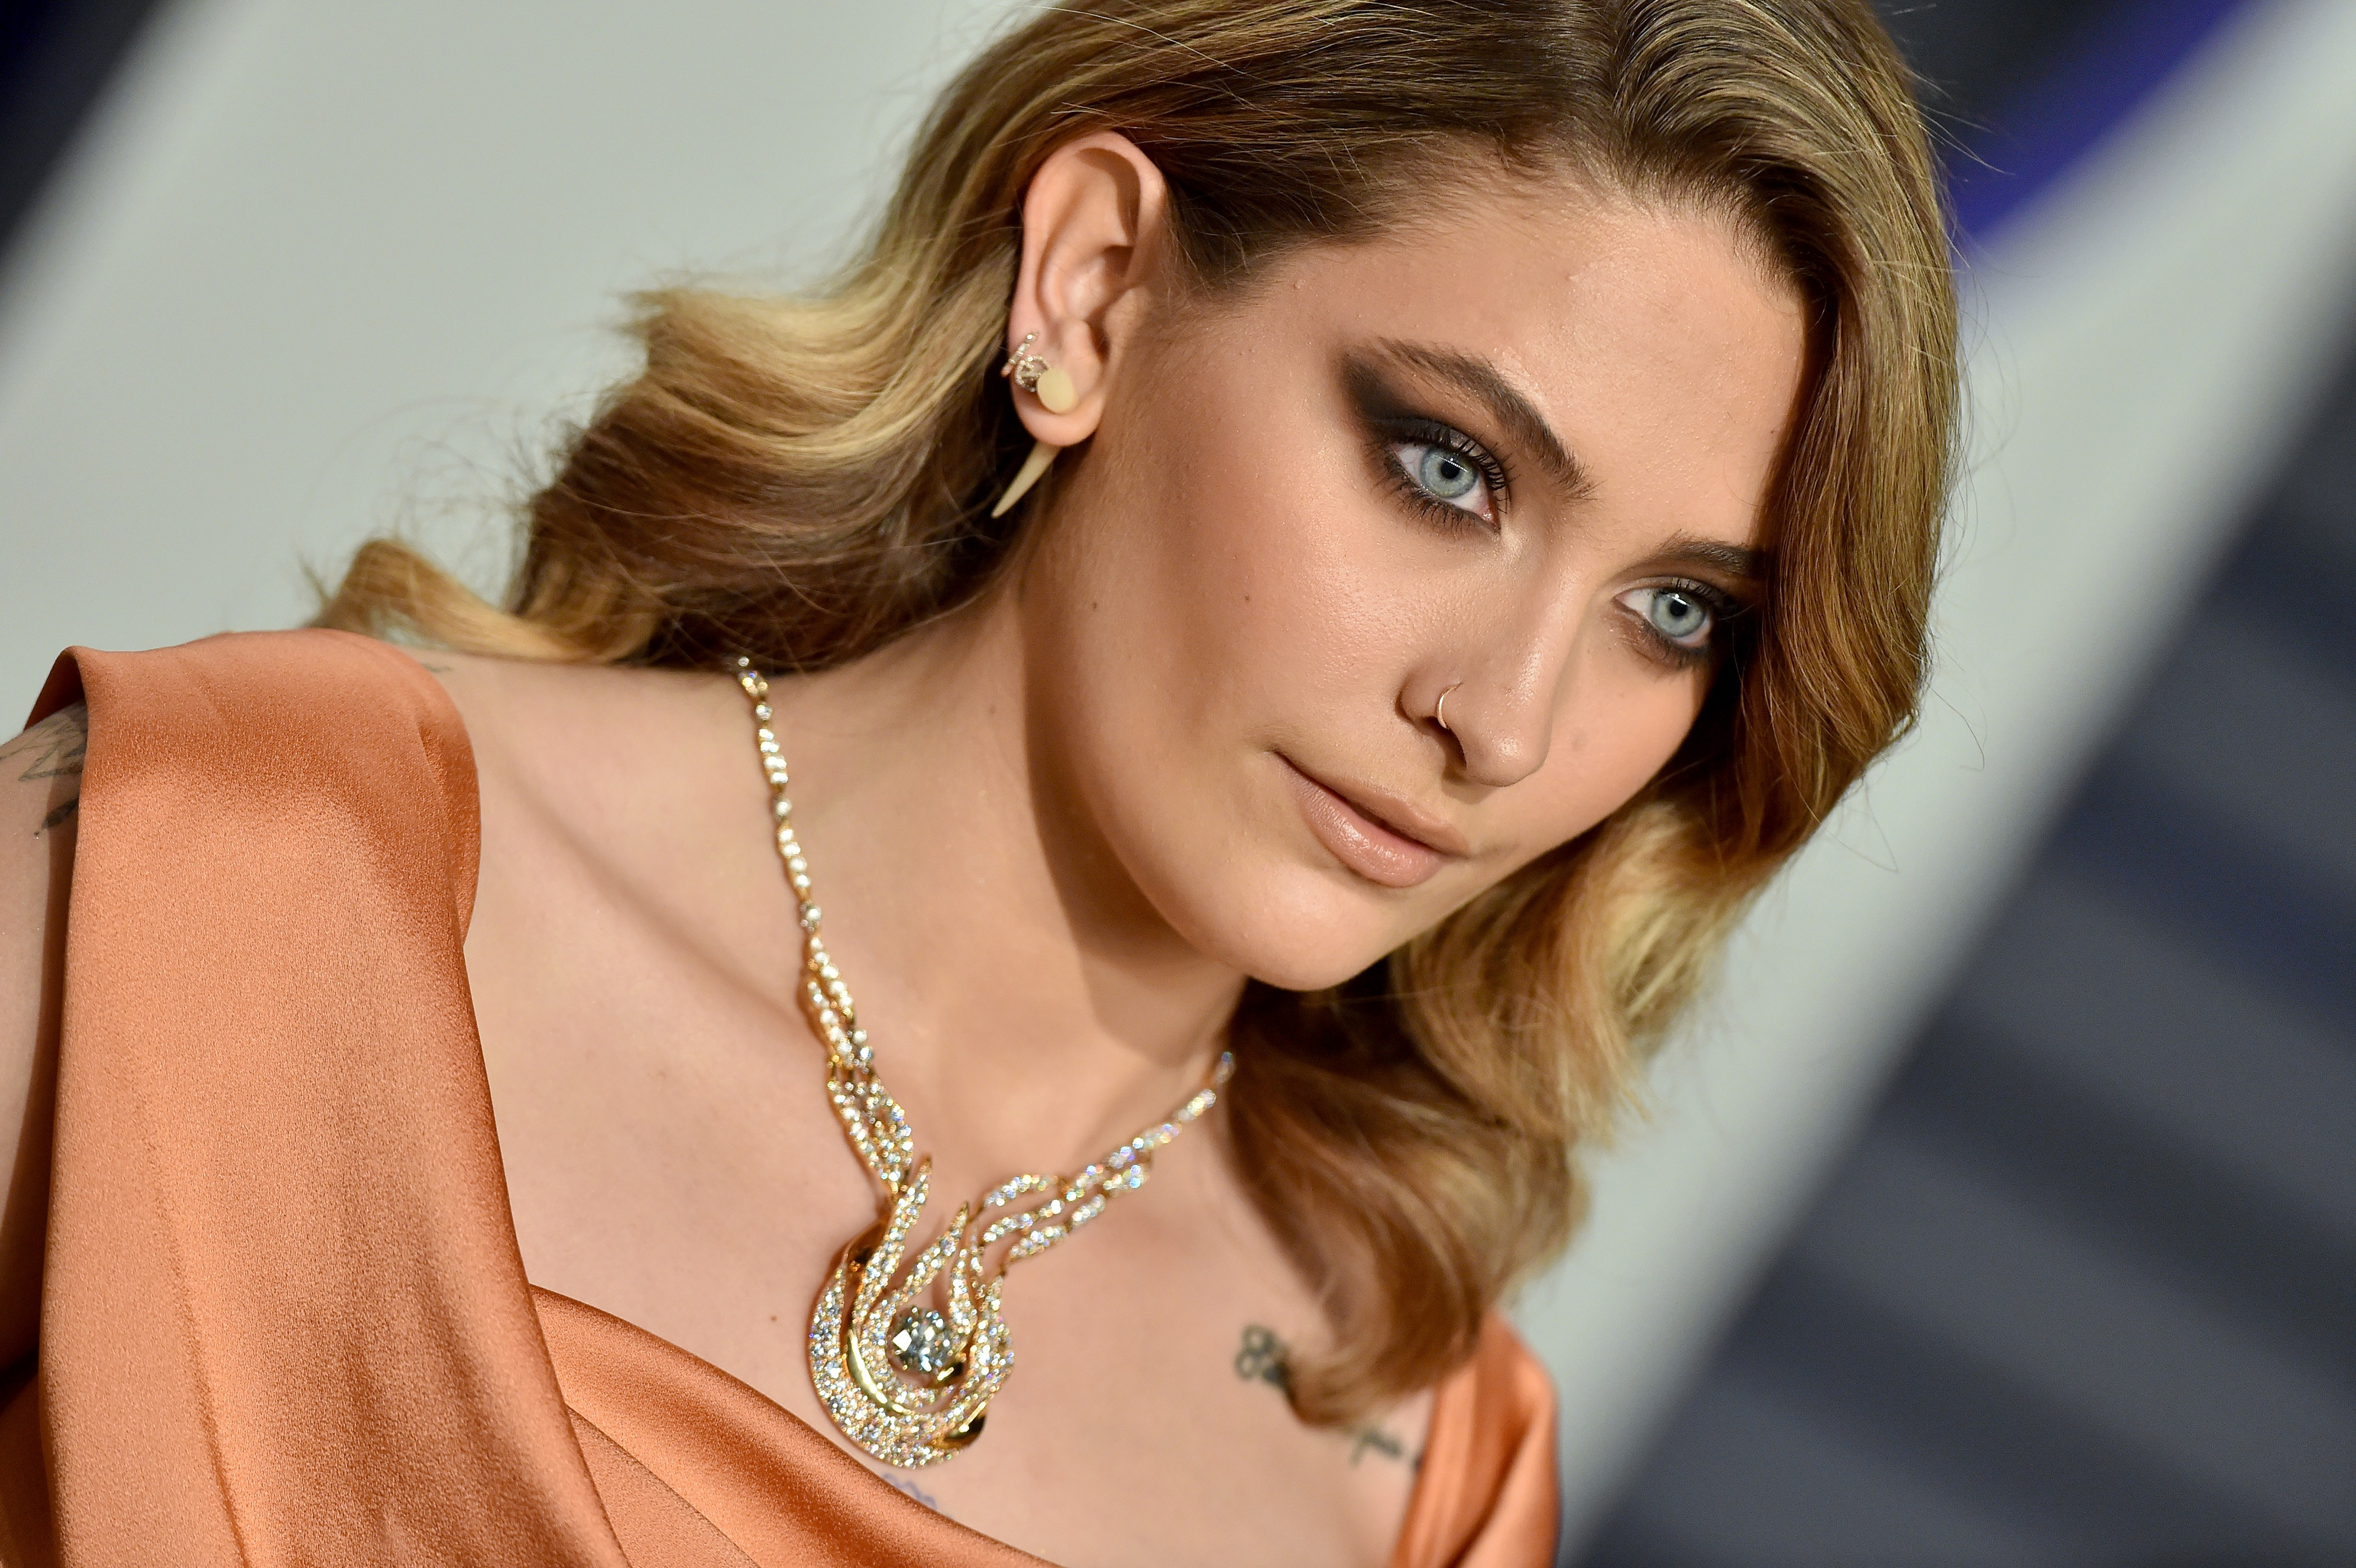 paris-jackson-says-its-not-my-role-to-defend-michael-jackson-over-abuse-allegations